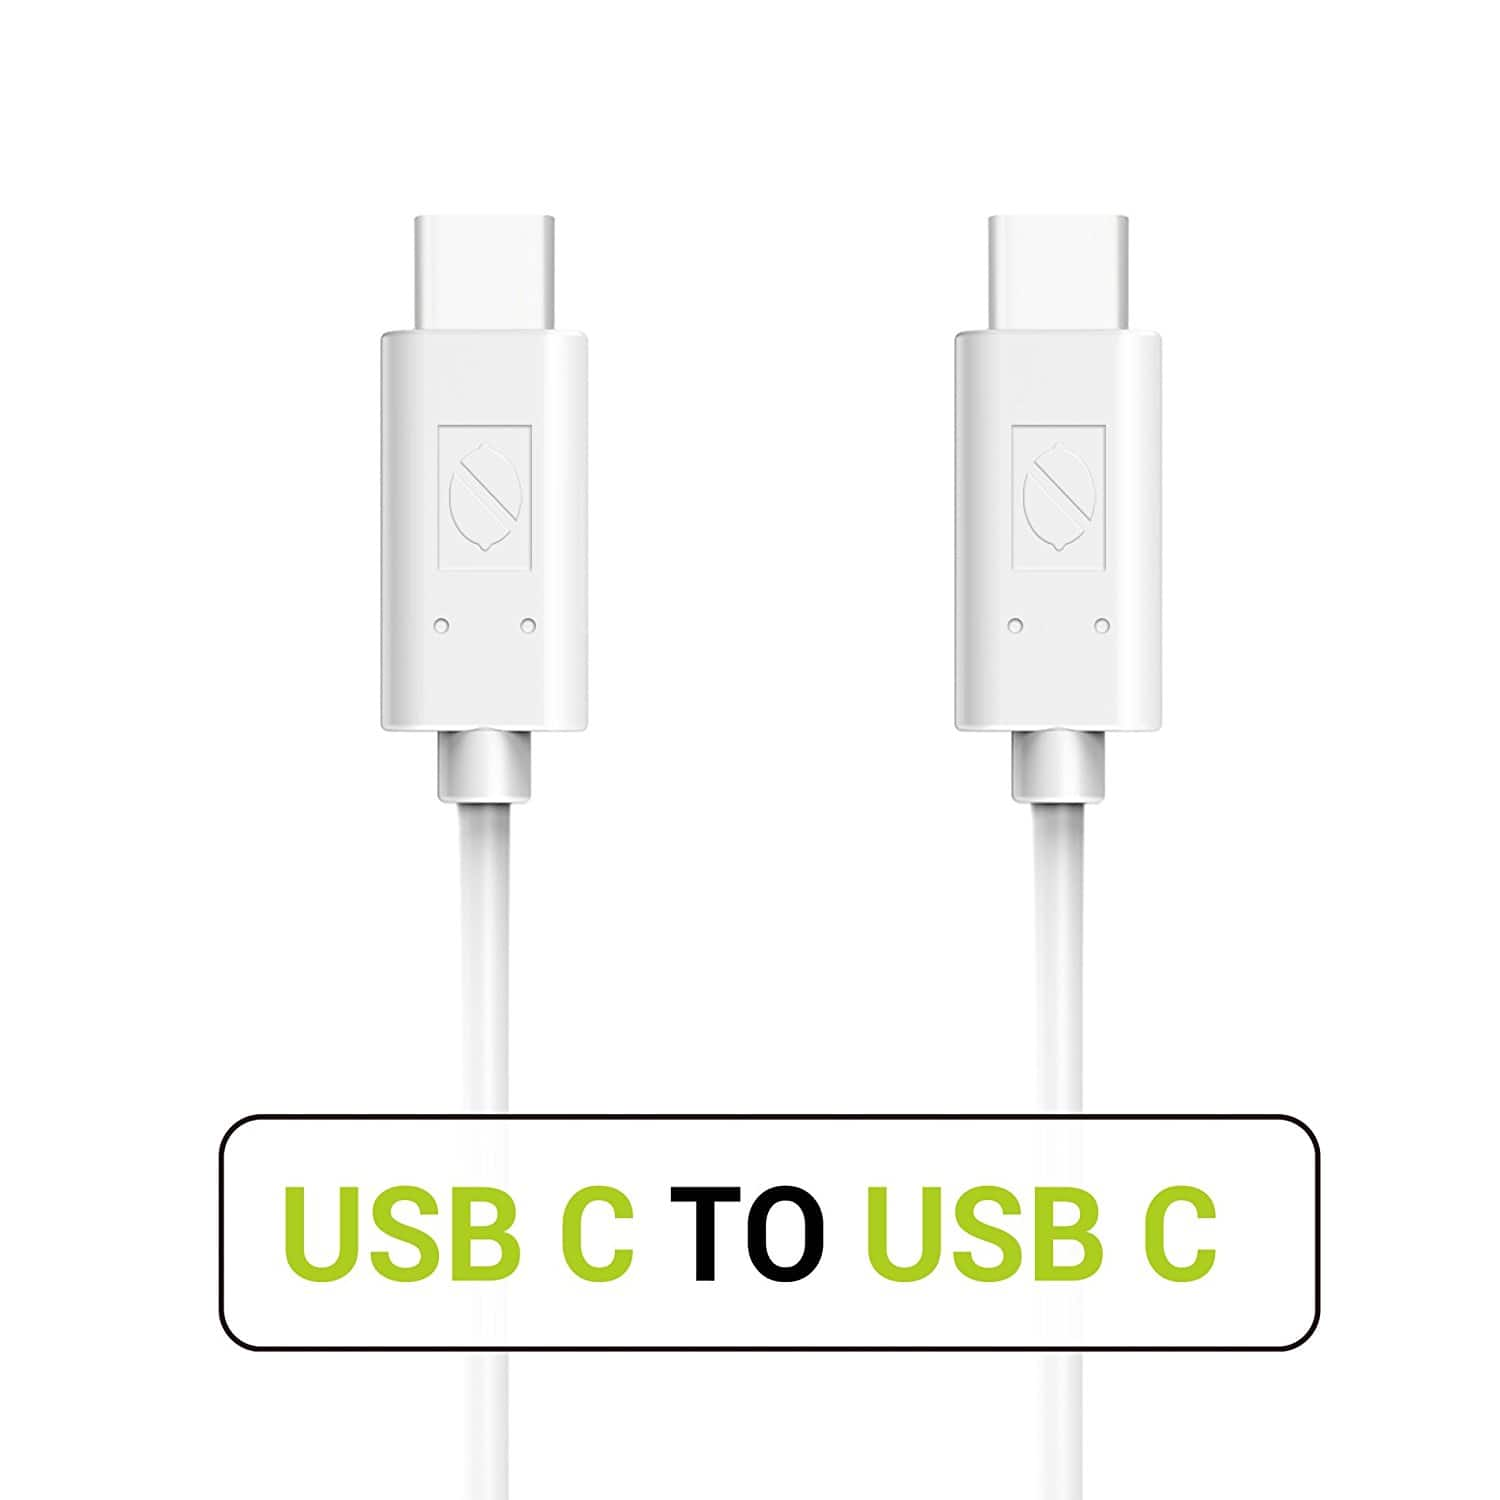 60% off ZeroLemon Type-C cables on sale,  2-Pack Nylon Braided Fast Charging Sync Cable $4;  1-Pack $3.5